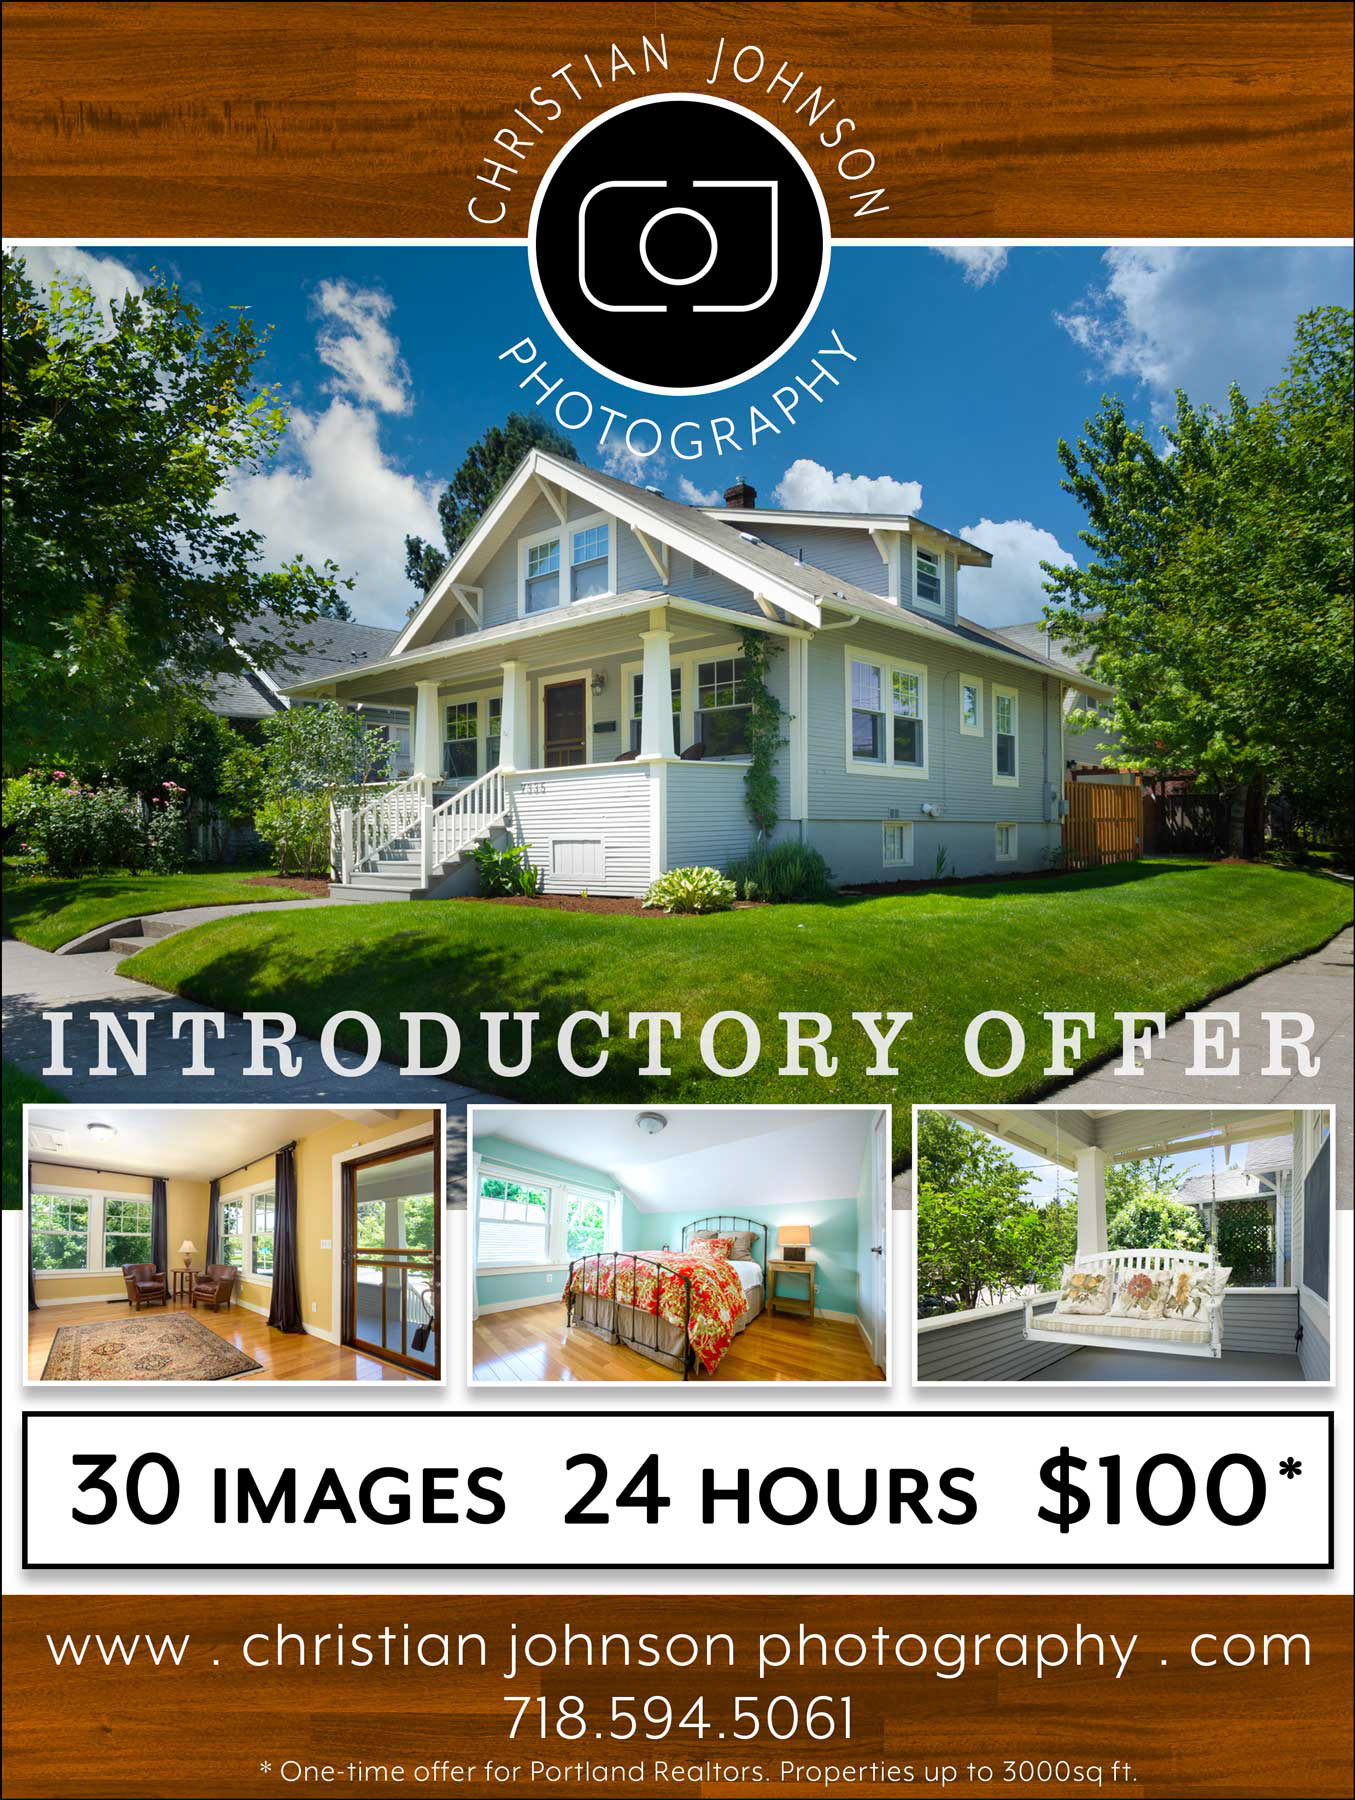 Christian Johnson Layout And Typography - Real estate photography flyer templates